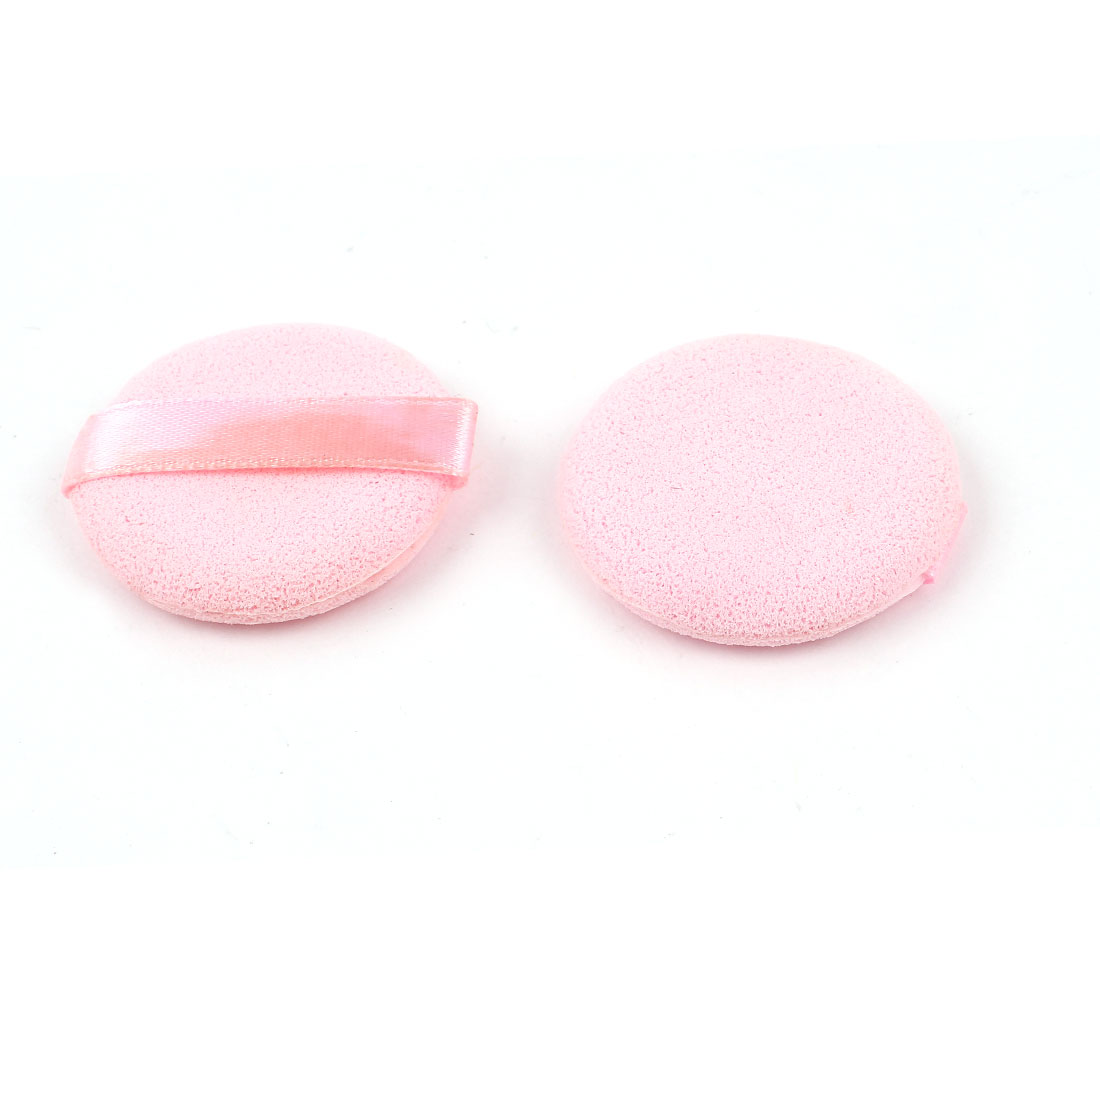 2 Pcs 4cm Dia Circle Shaped Pink Sponge Powder Puff Pad Neat Pat for Lady